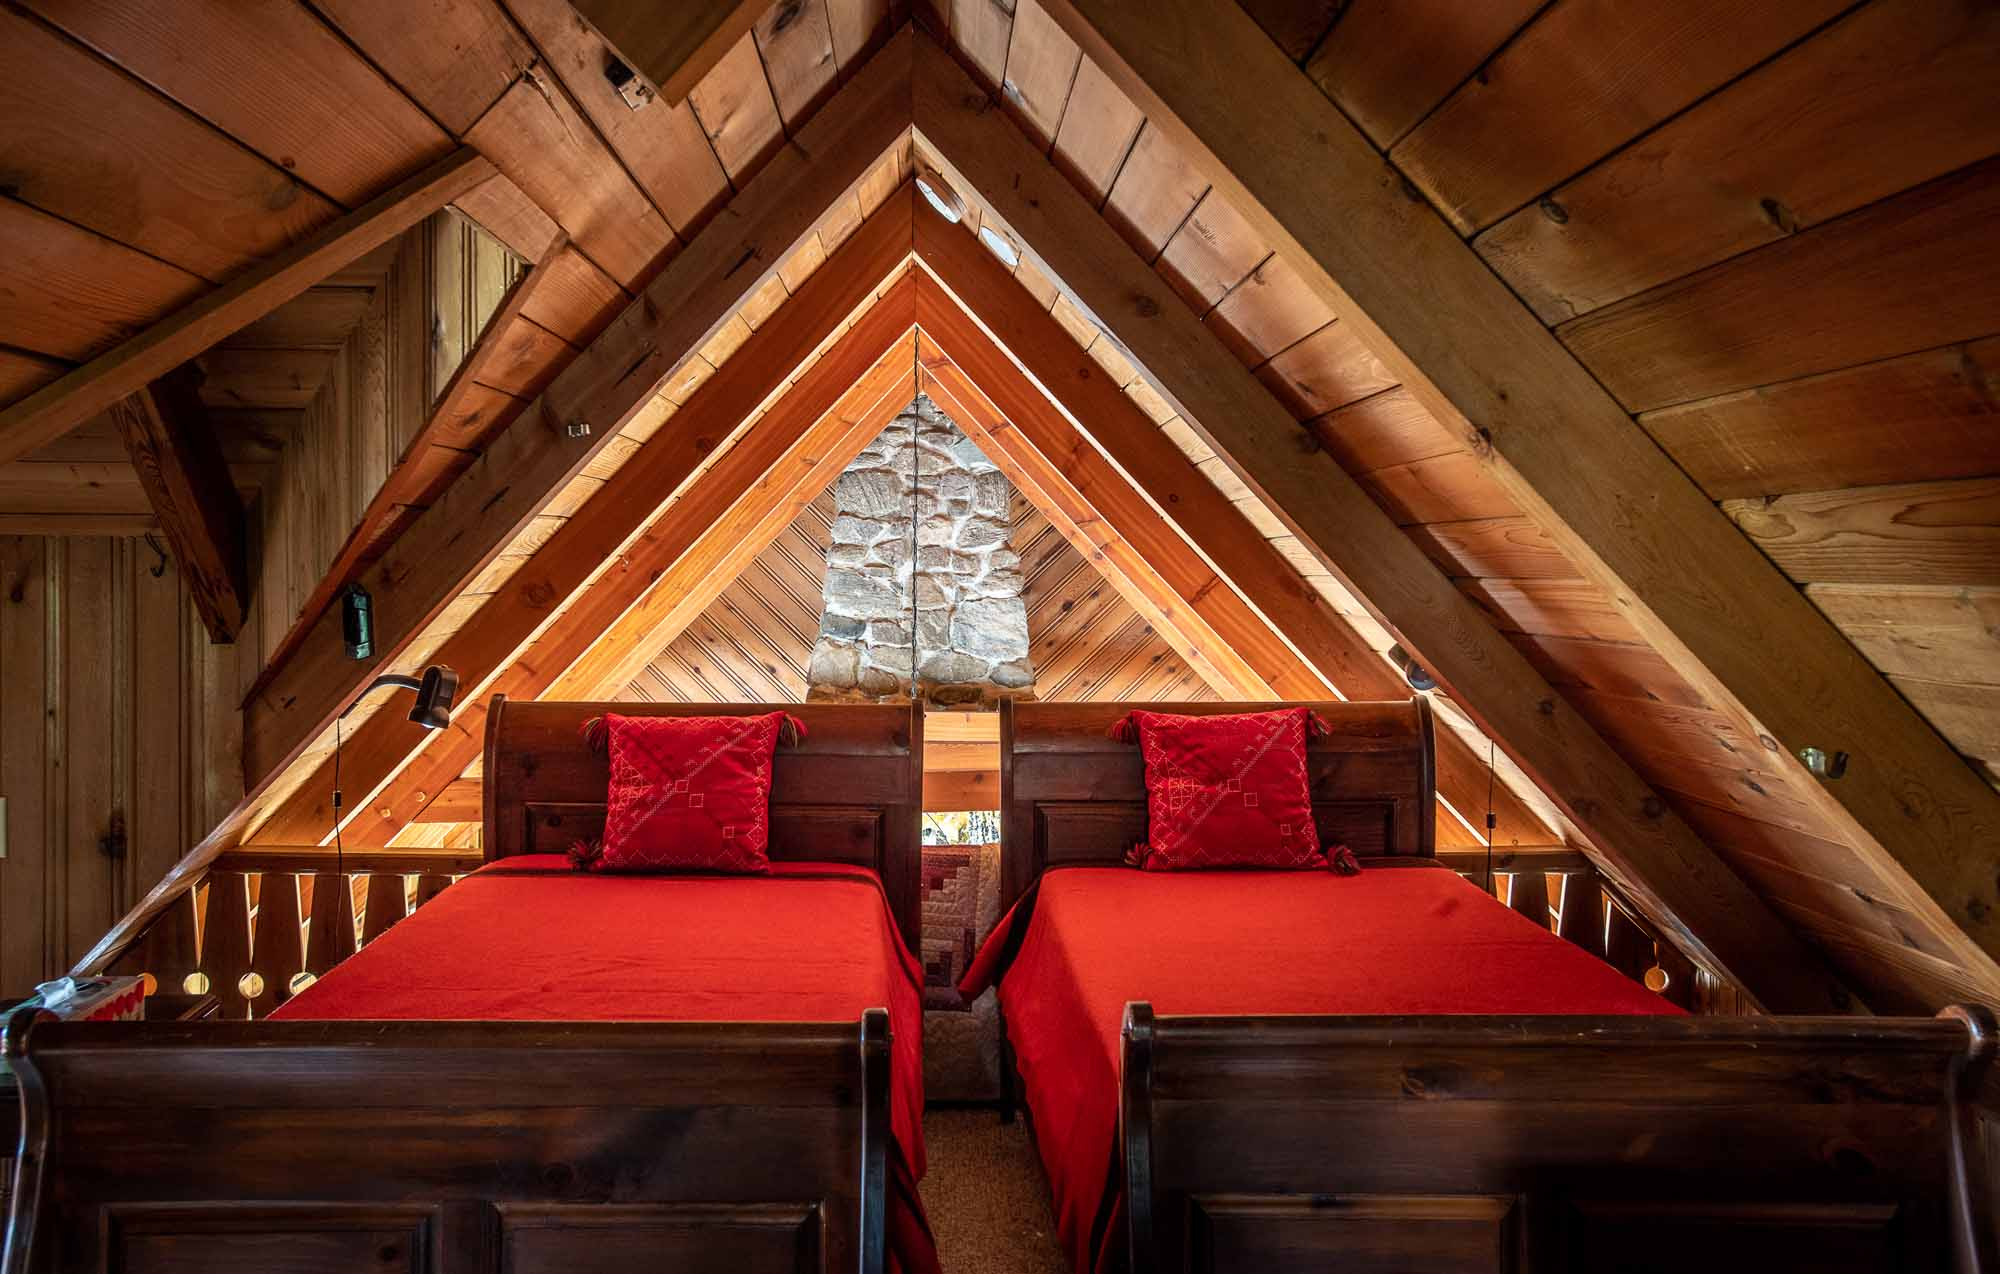 The-Chalet-and-the-Beach-House-Ontarios-Ski-Heritage-in-Two-Buildings-photo-by-Kristin-Schnelten-chalet-interior-bedroom